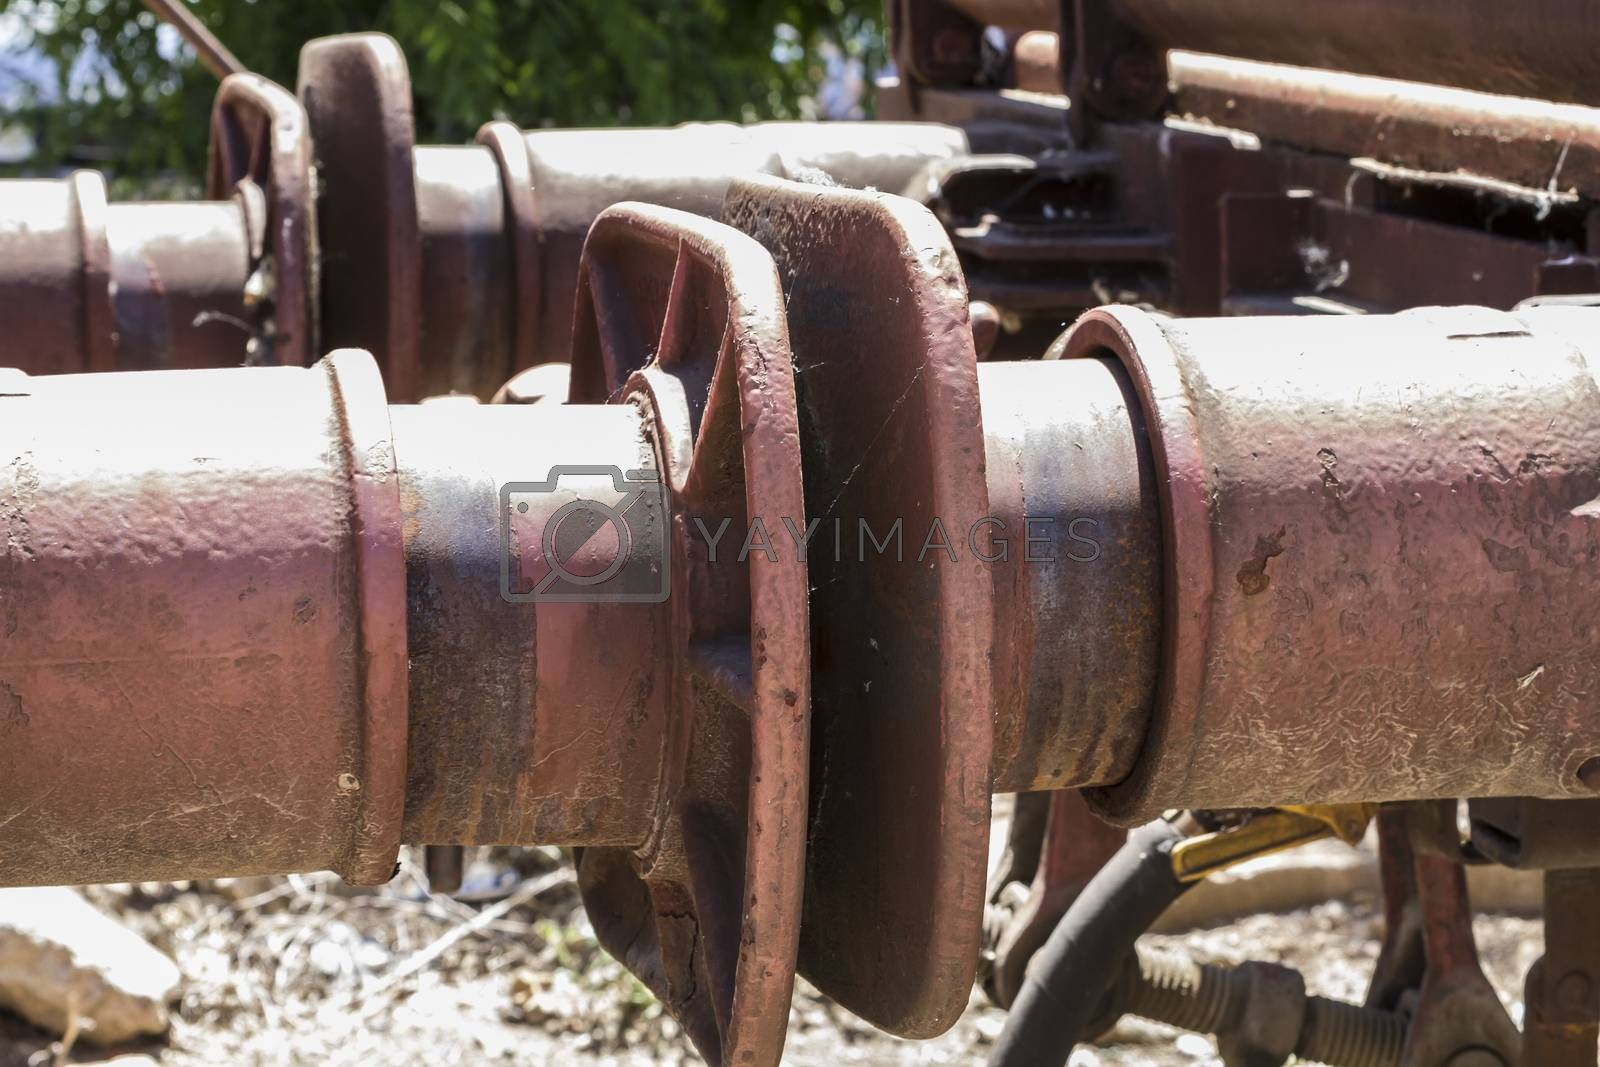 Royalty free image of old freight train, metal machinery details by FernandoCortes